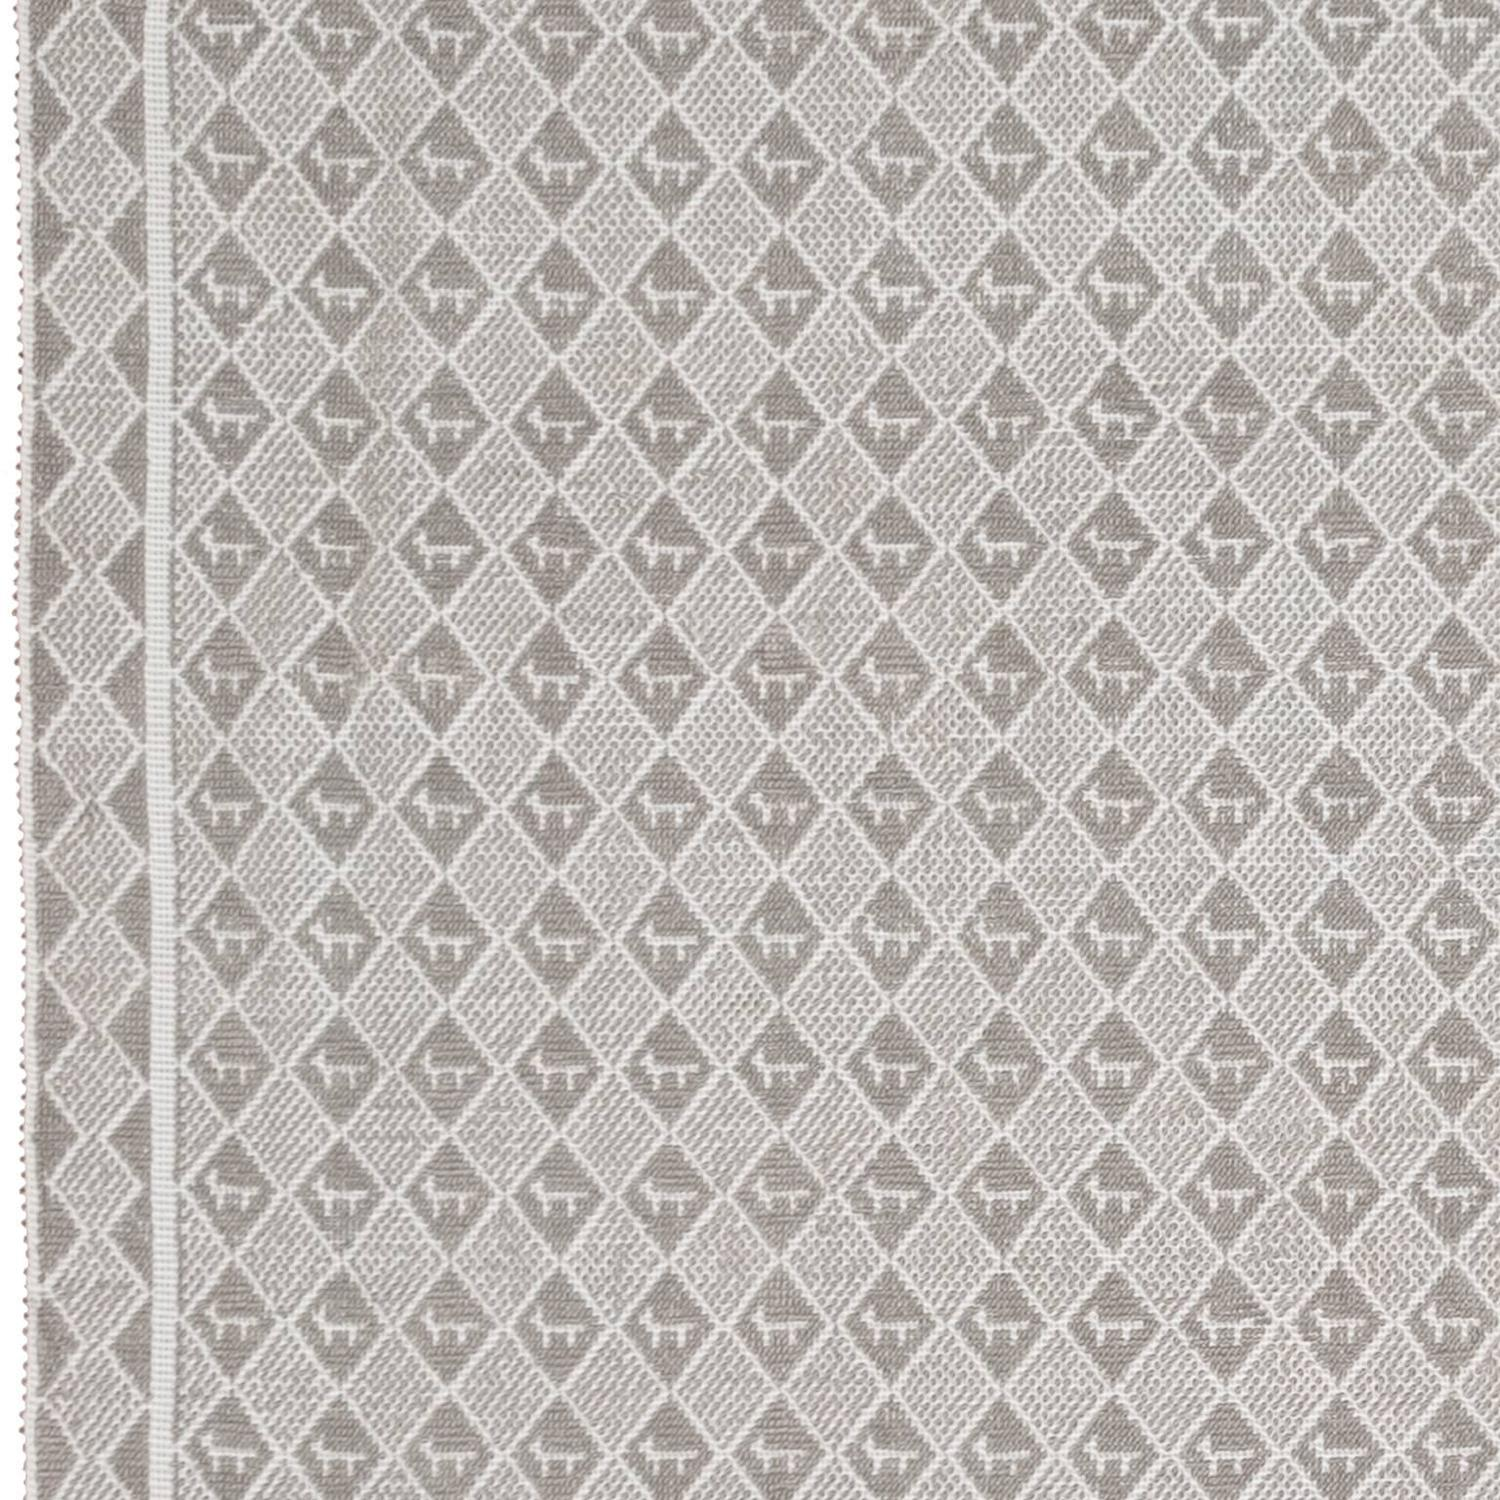 Contemporary Cagnolini Carpet Italy For Sale At 1stdibs